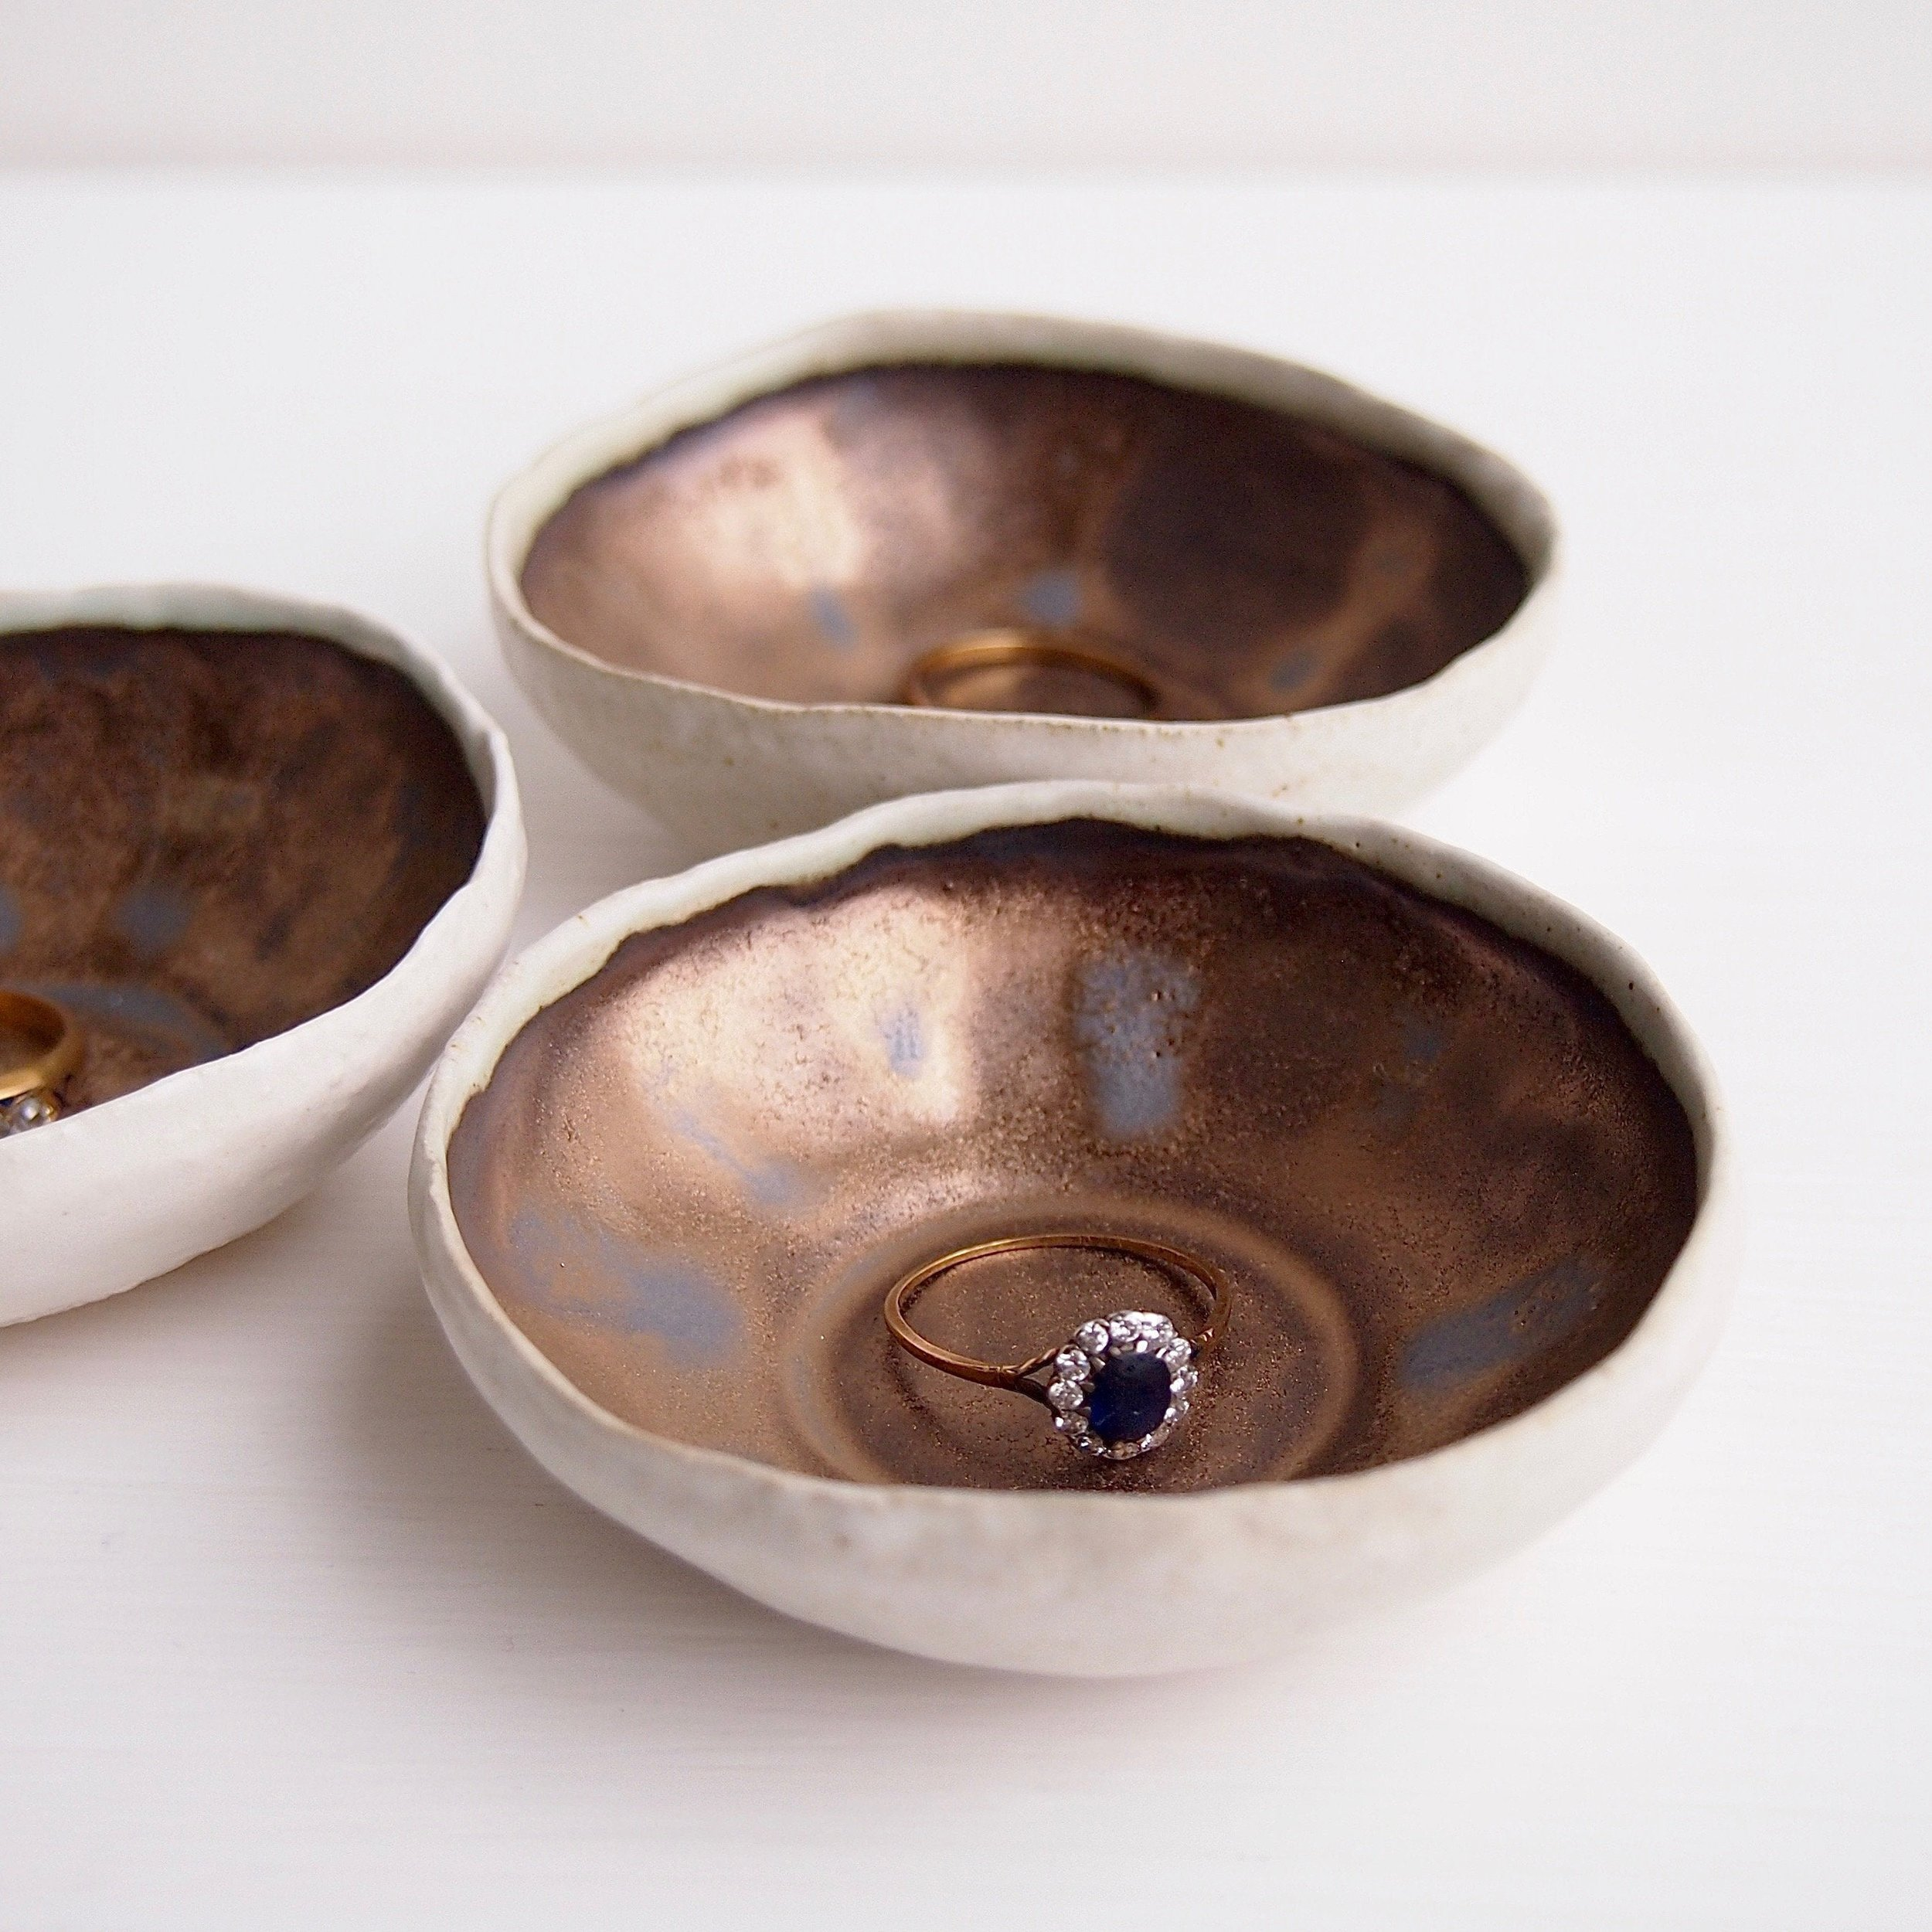 Cream and Copper Ceramic Wedding Ring Dish by Kabin Shop